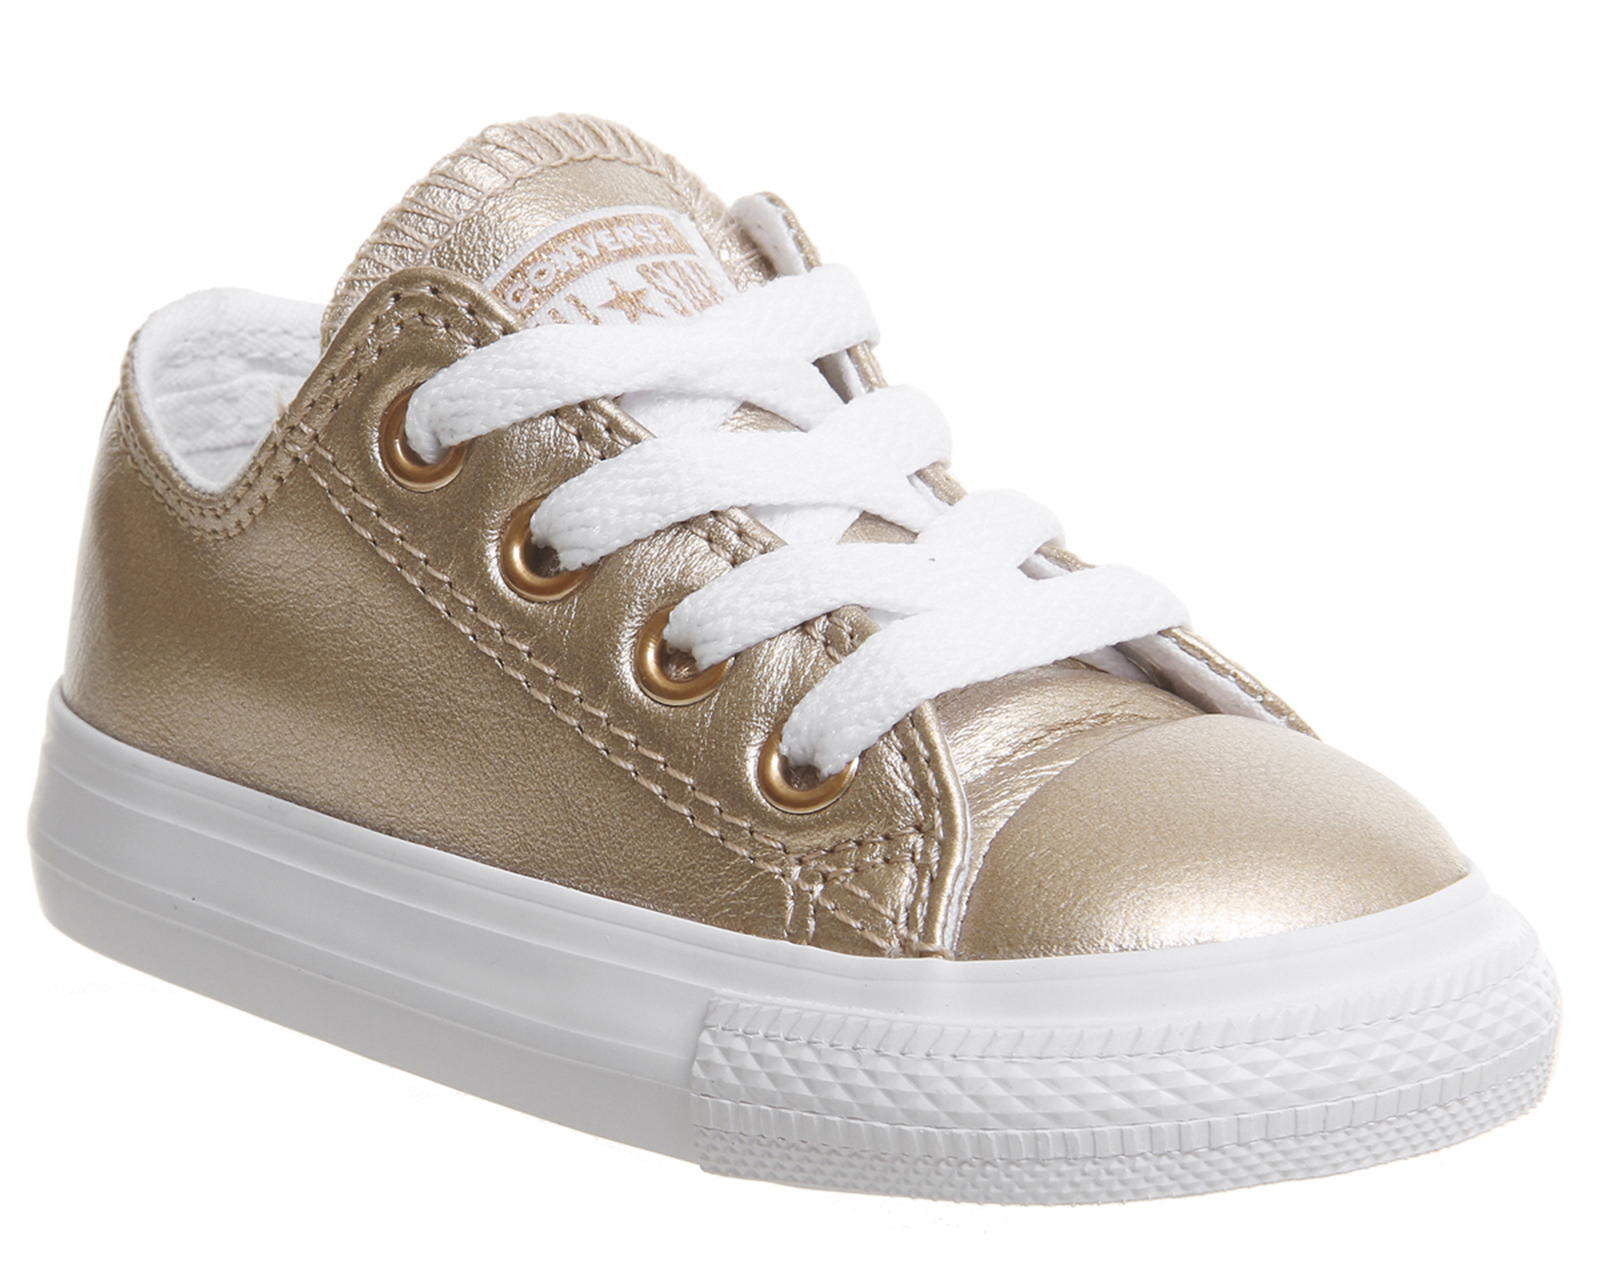 d5aafbb4ced4 Sentinel Kids Converse All Star Ox Leather Infant Rose Gold Metallic  Exclusive Kids